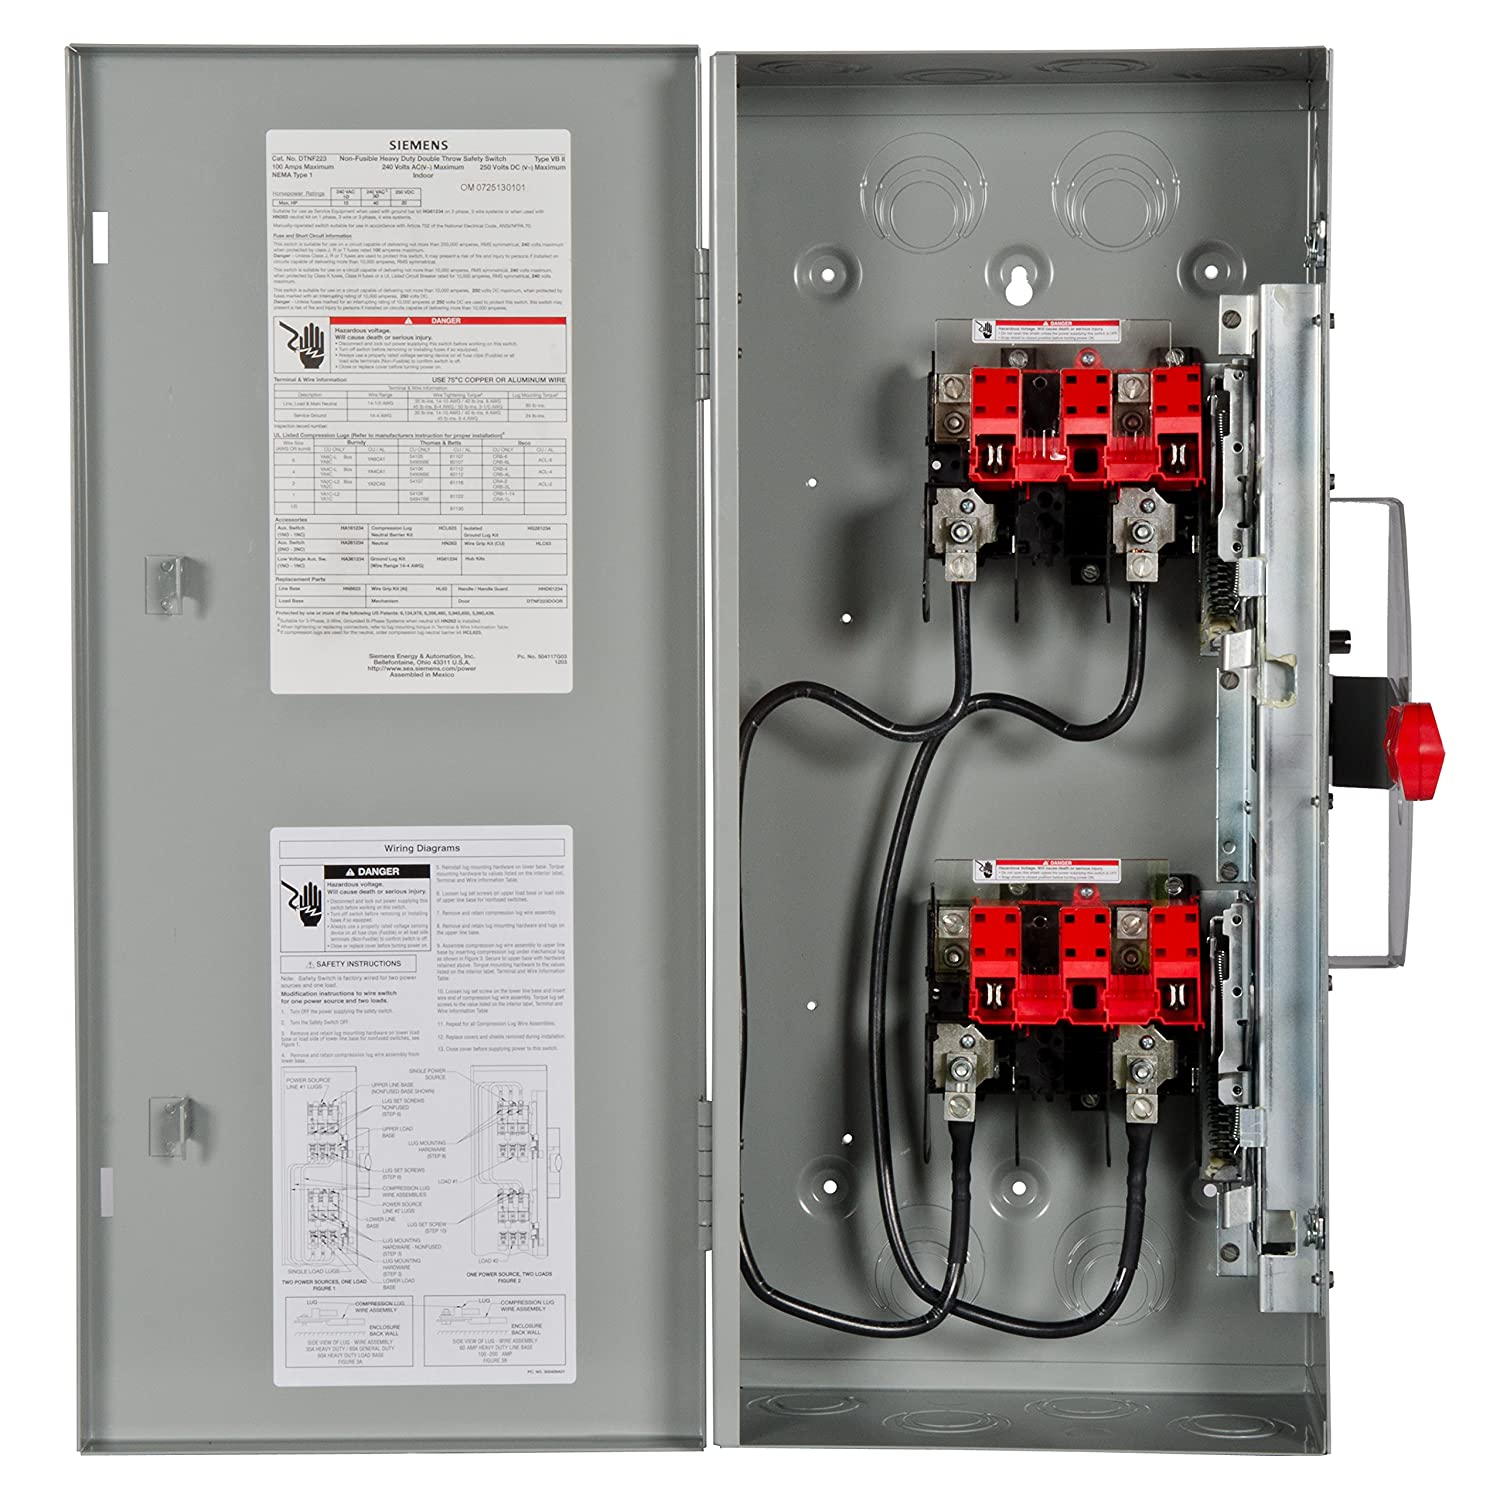 Siemens Dtnf223 100 Amp 2 Pole 240 Volt 2w Non Fused Double Throw Switch Wiring Diagram Safety Switches